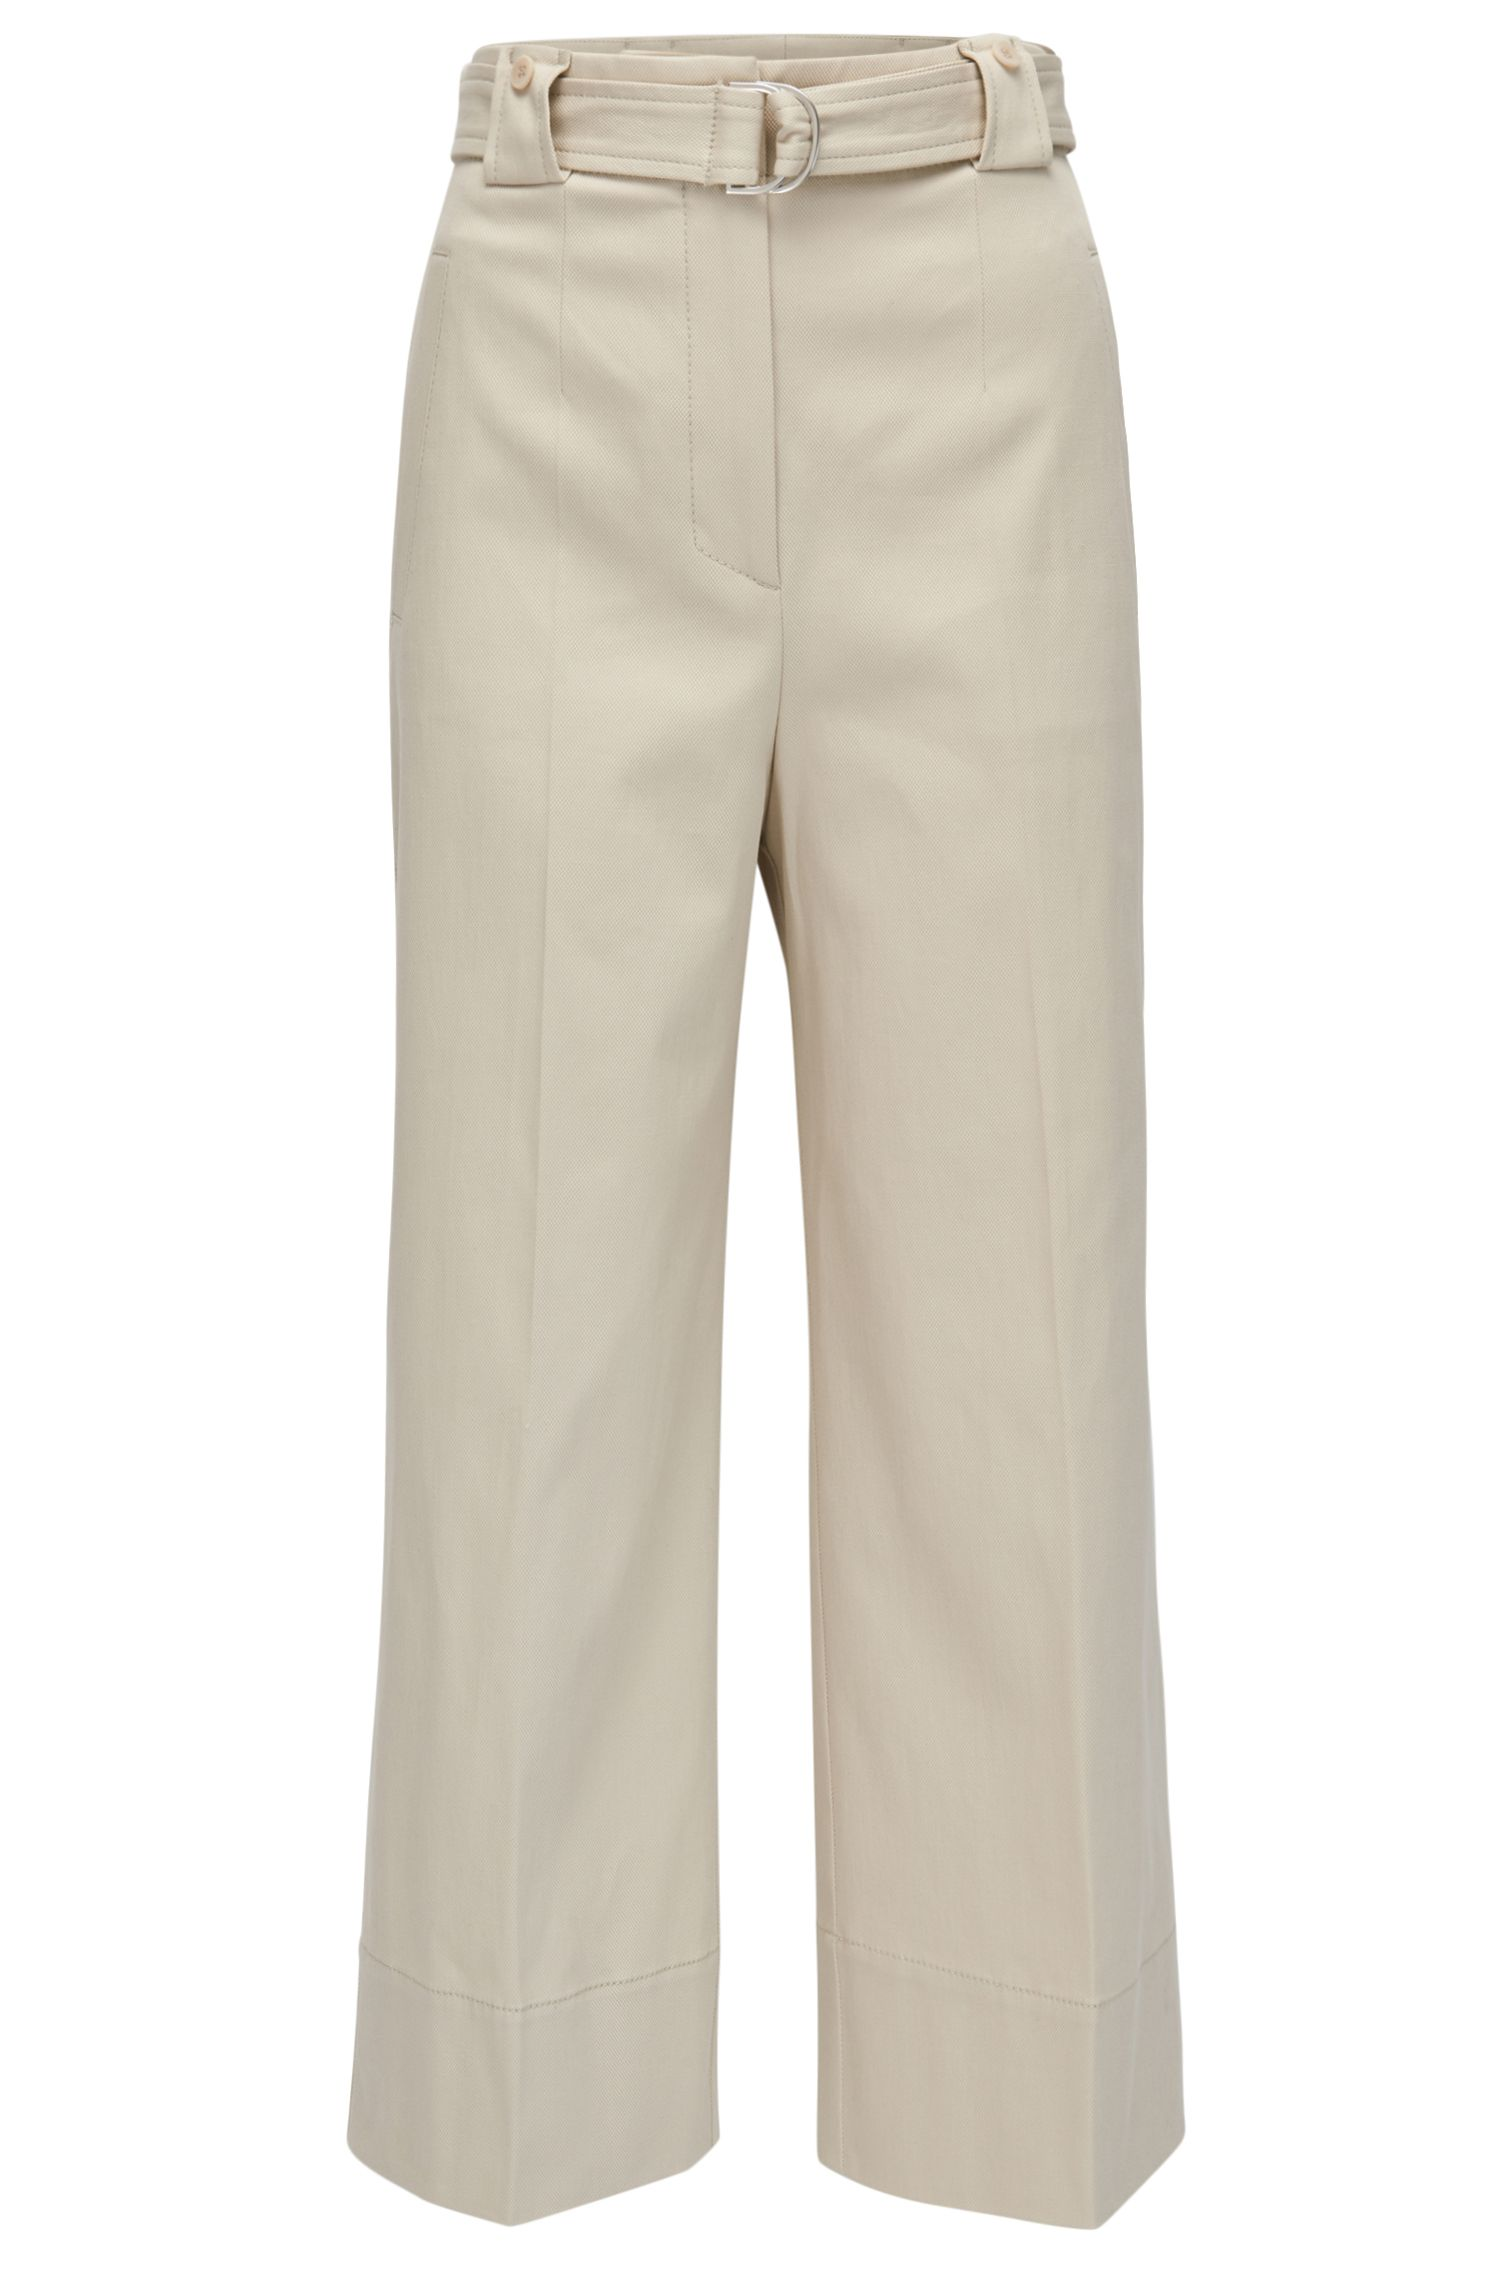 Wide-leg stretch-cotton trousers in a regular fit